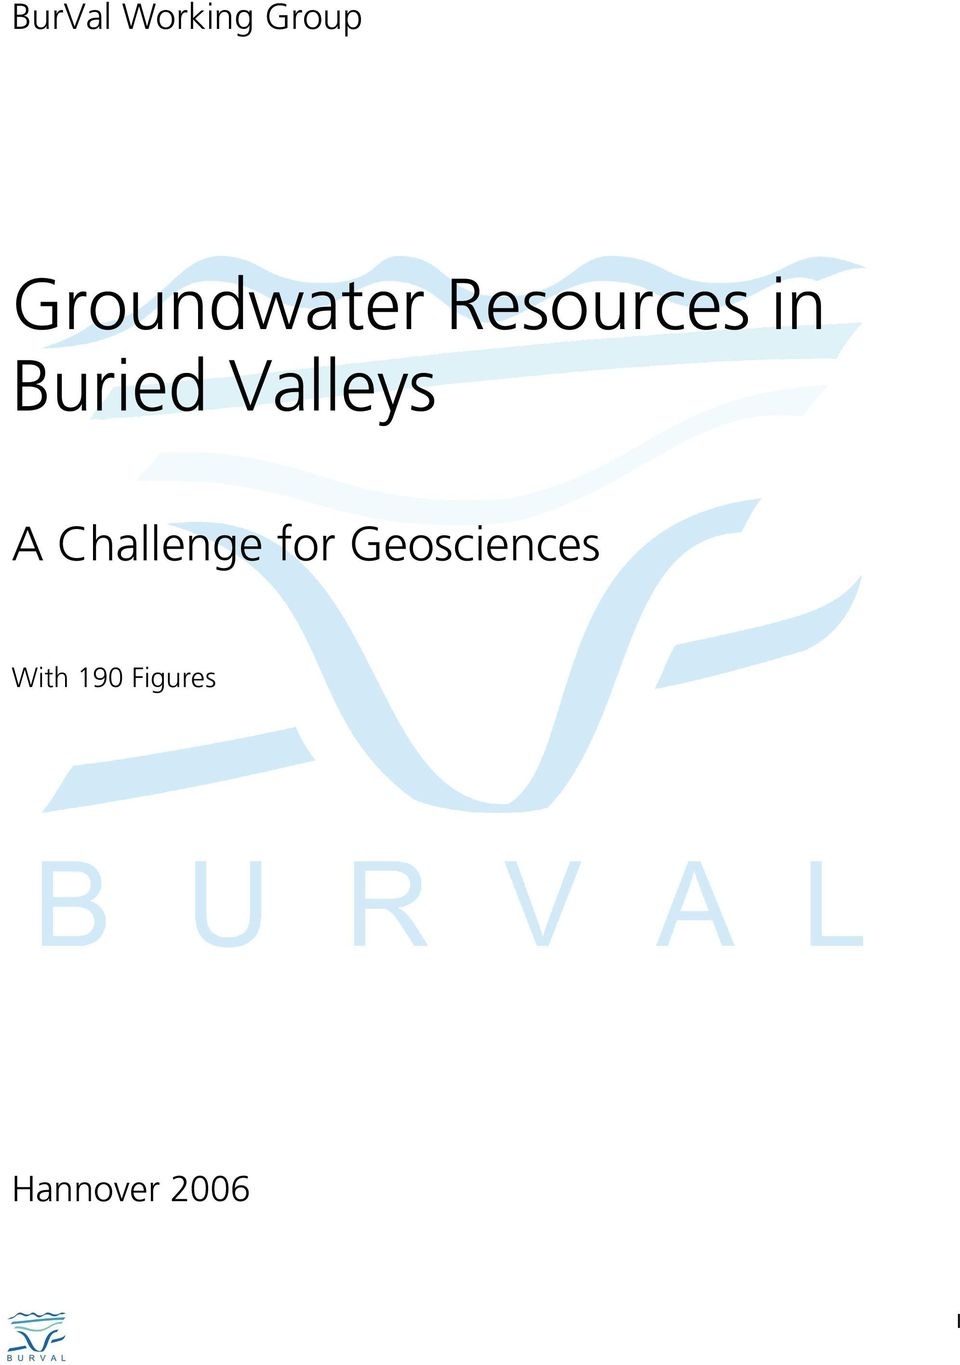 Buried Valleys A Challenge for